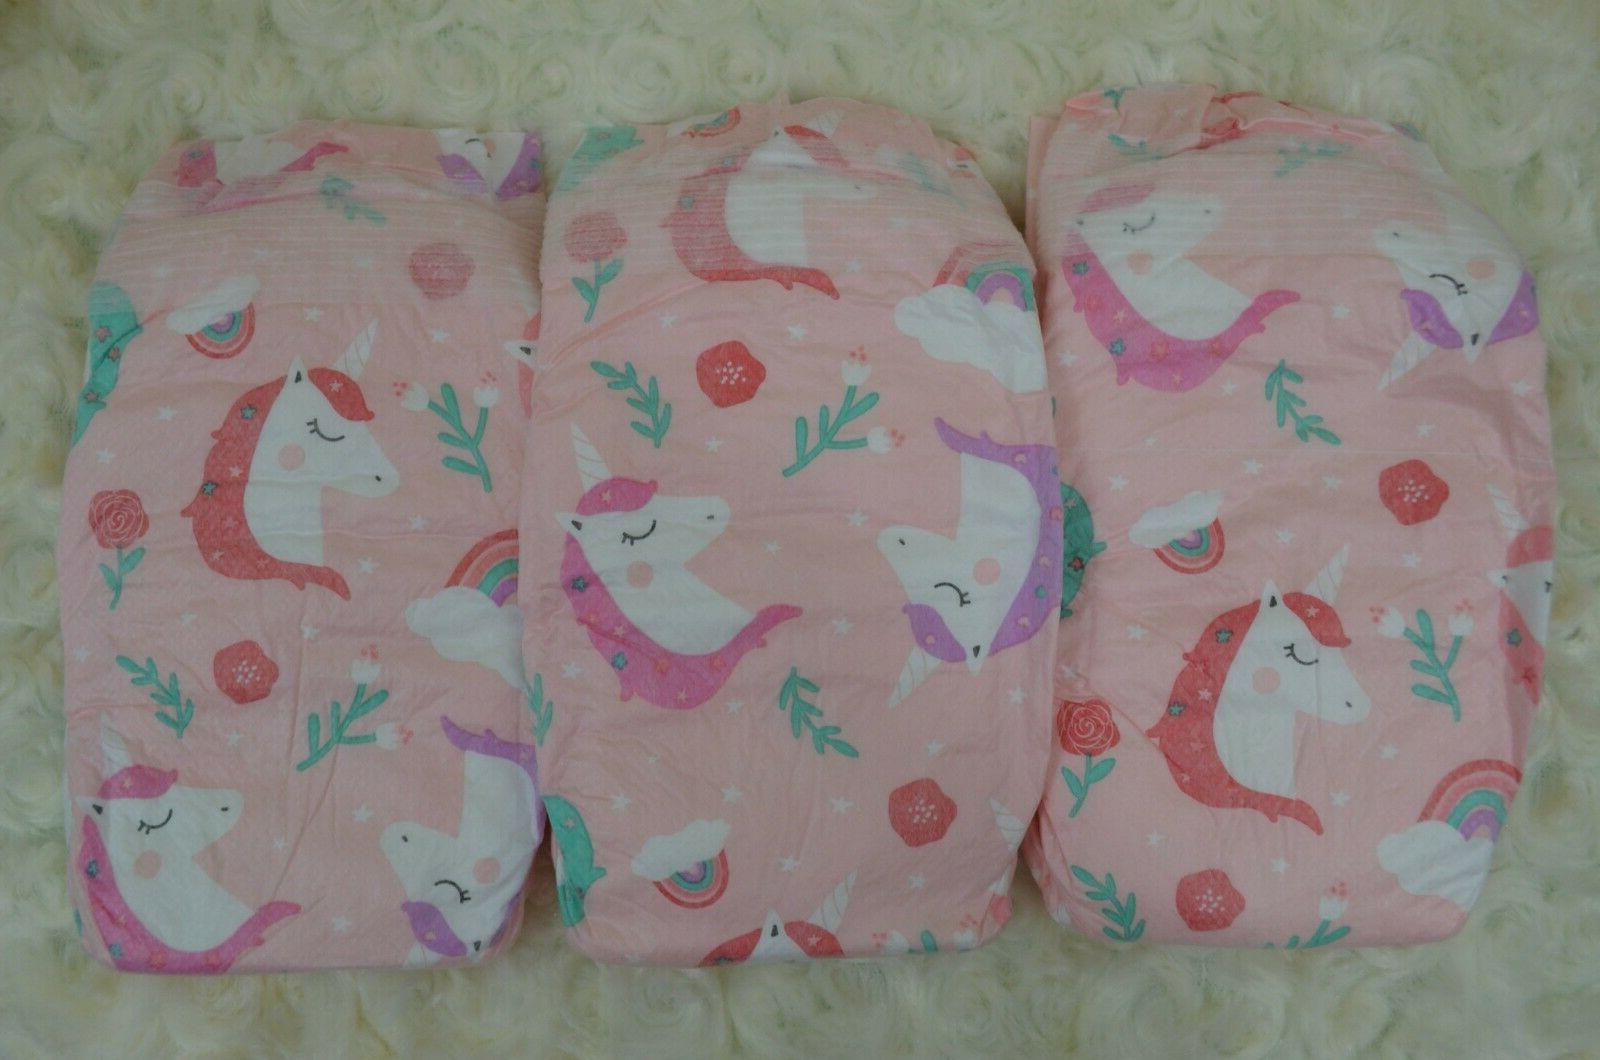 diapers 6 pack for dolls and newborn